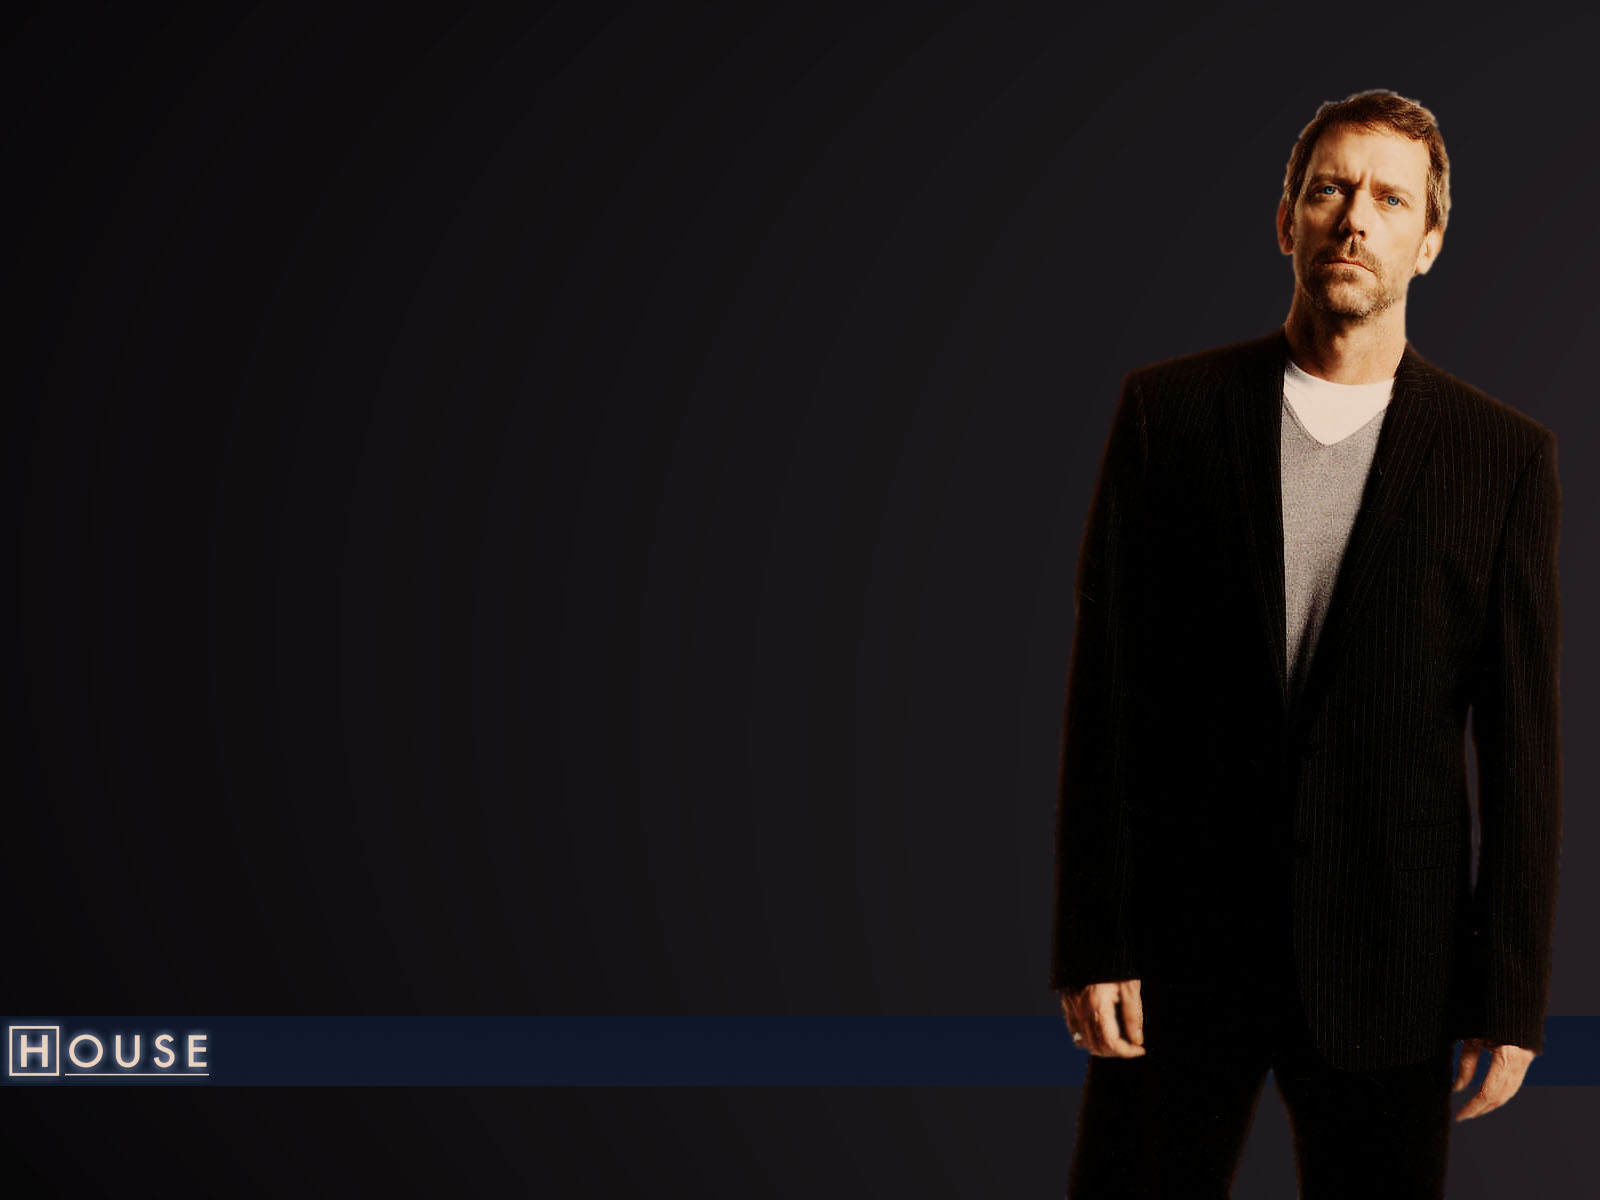 House md wallpaper house m d wallpaper 2662605 fanpop for House md music